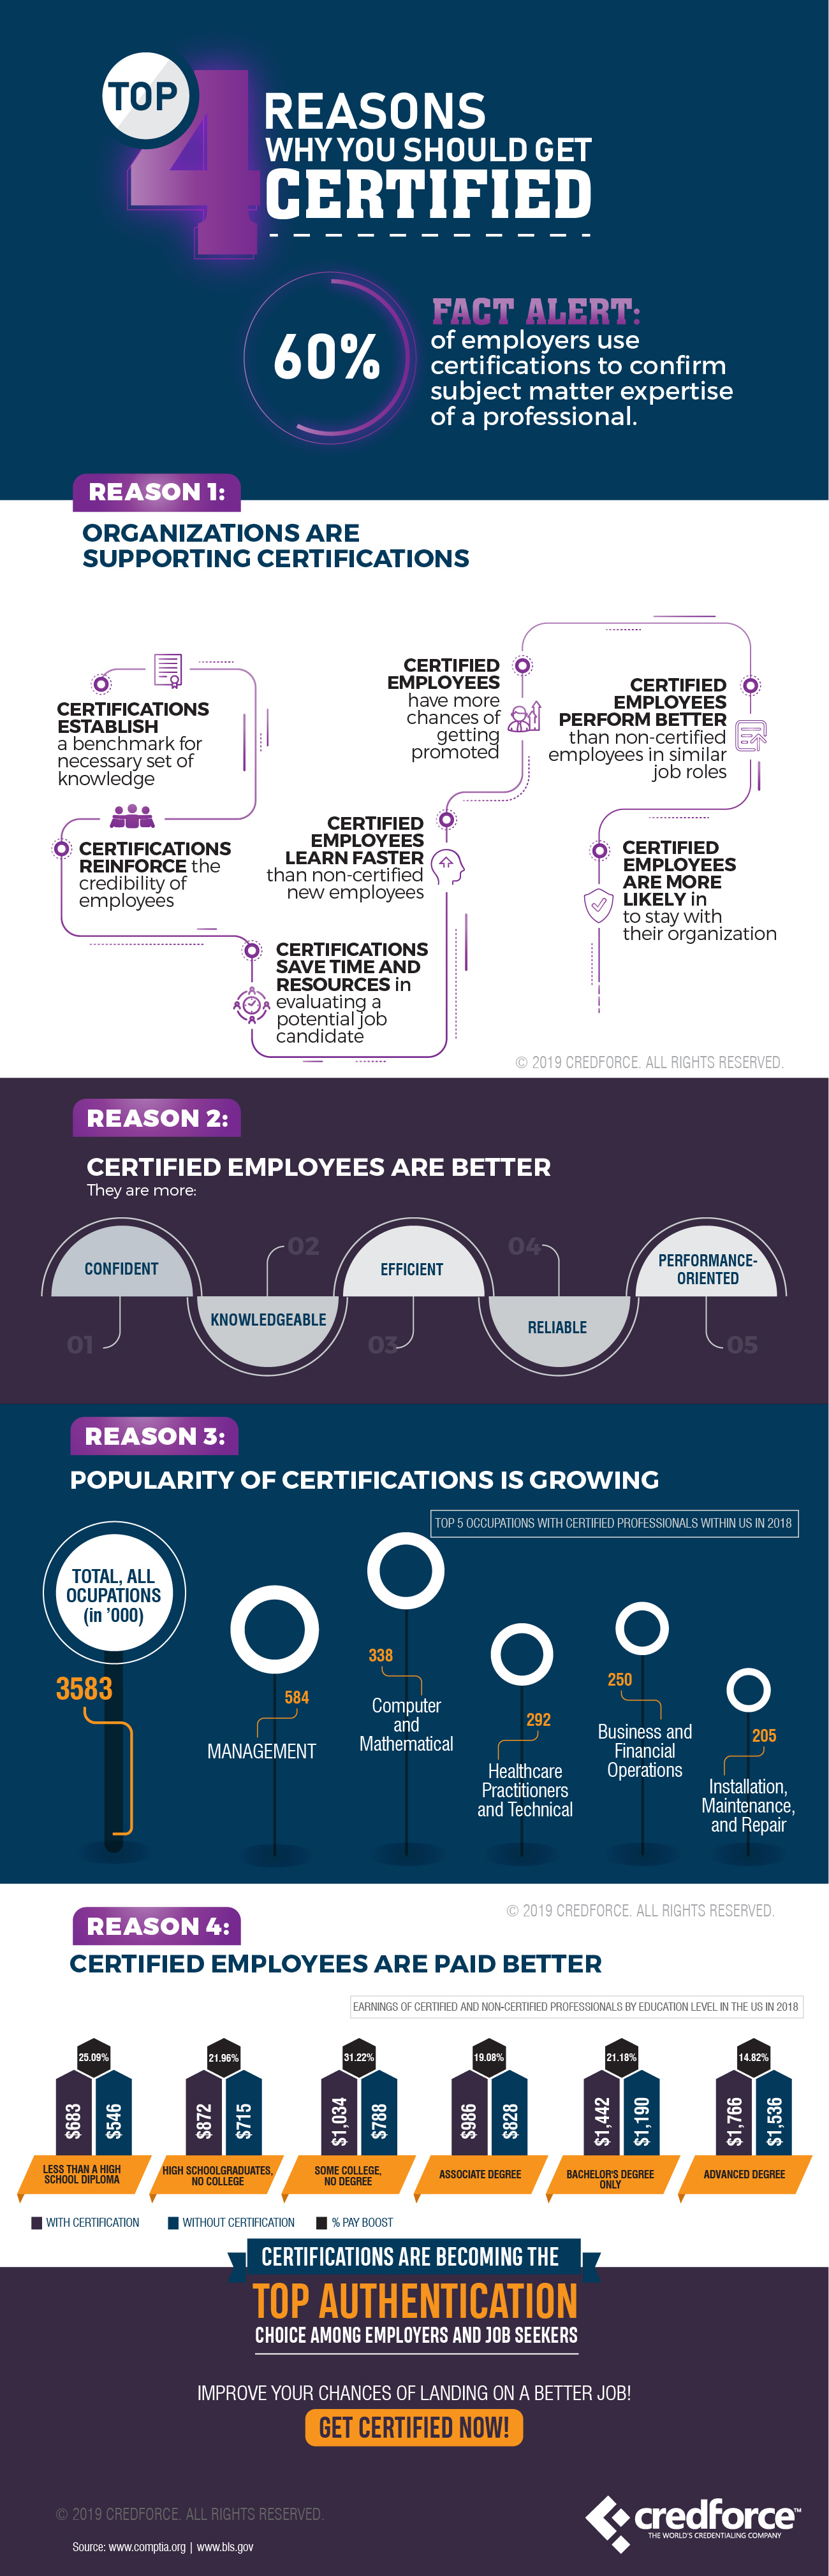 Top 4 Reasons Why You Should Get Certified_CF_IG Fresh